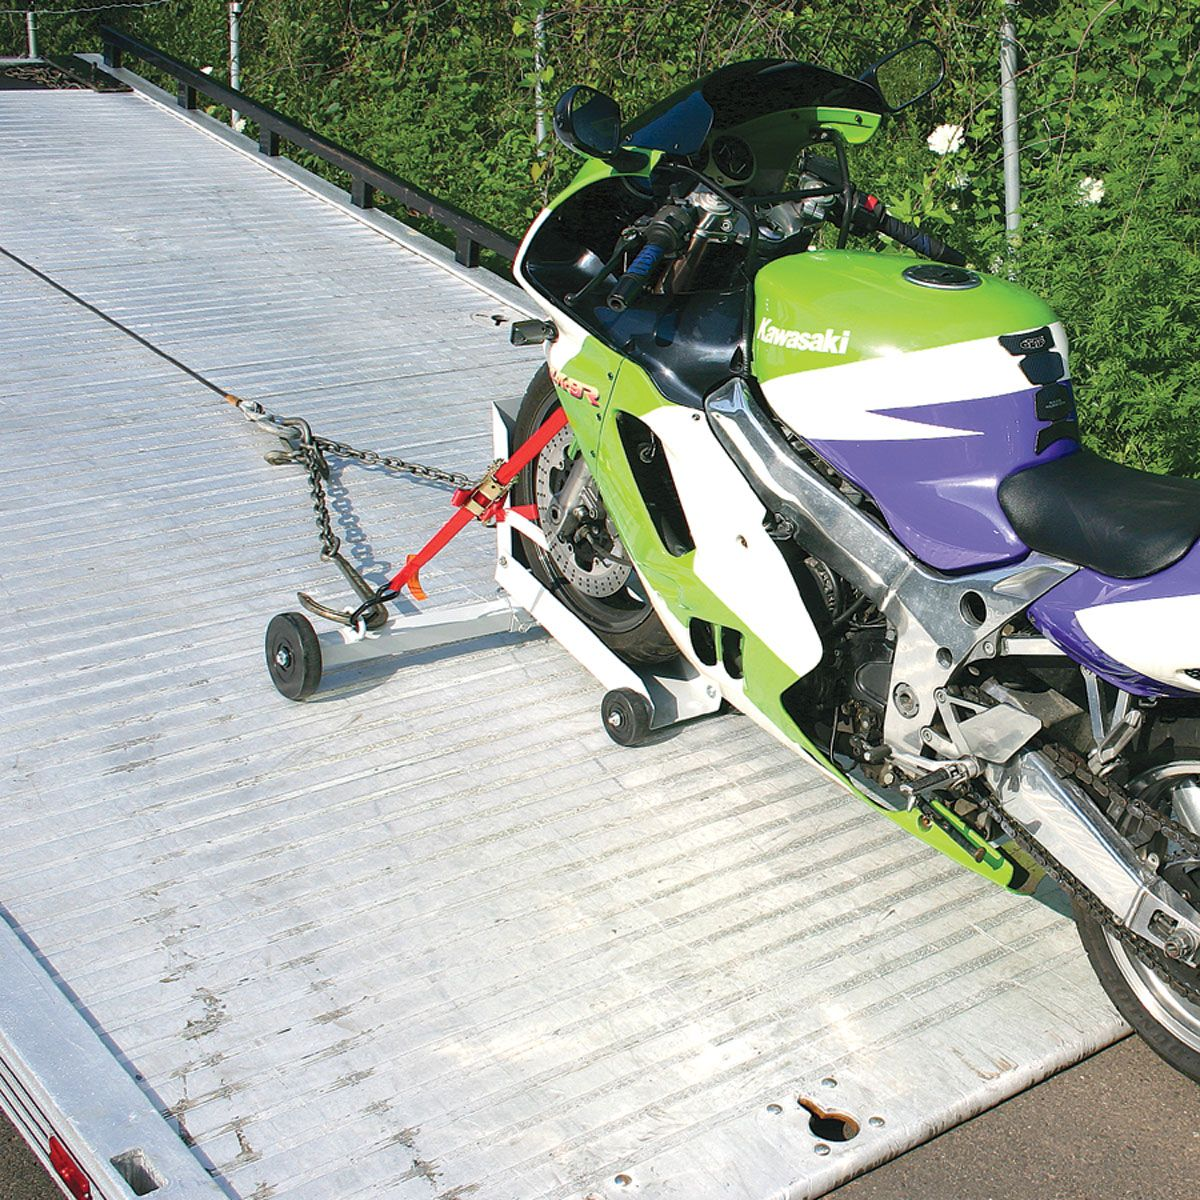 Best 20 motorcycle towing ideas on pinterest motorcycle trailer sidecar and free dirt bikes